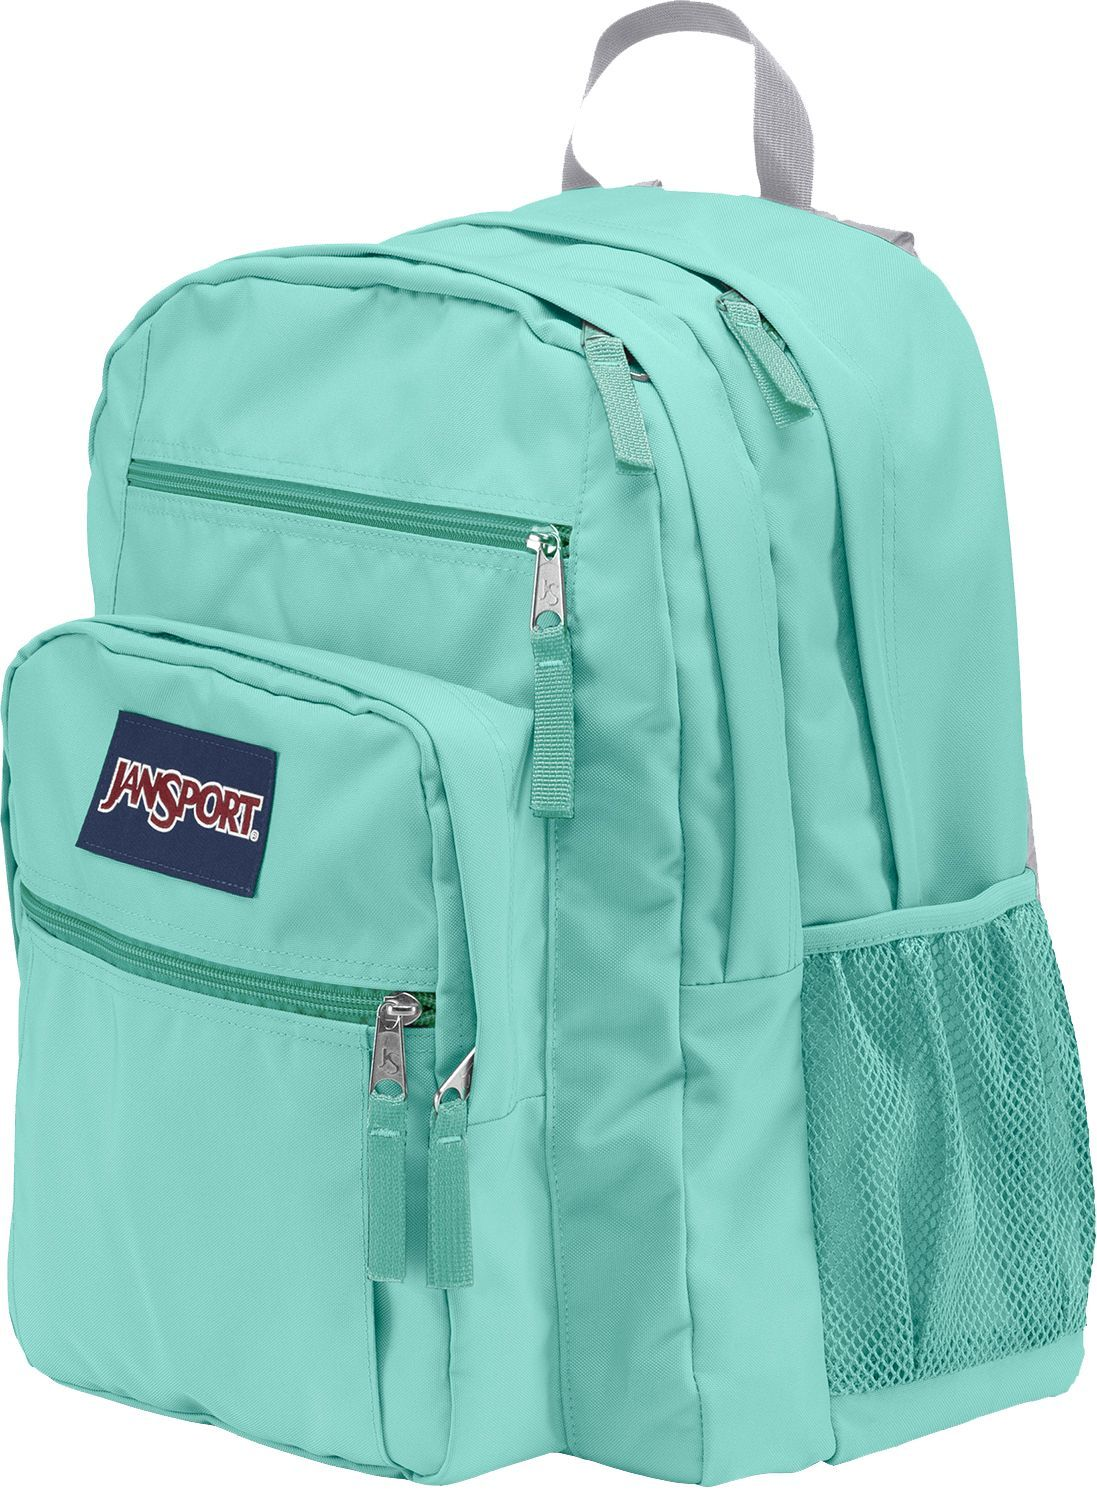 05ab0c50d27a JanSport Big Student Backpack in 2019